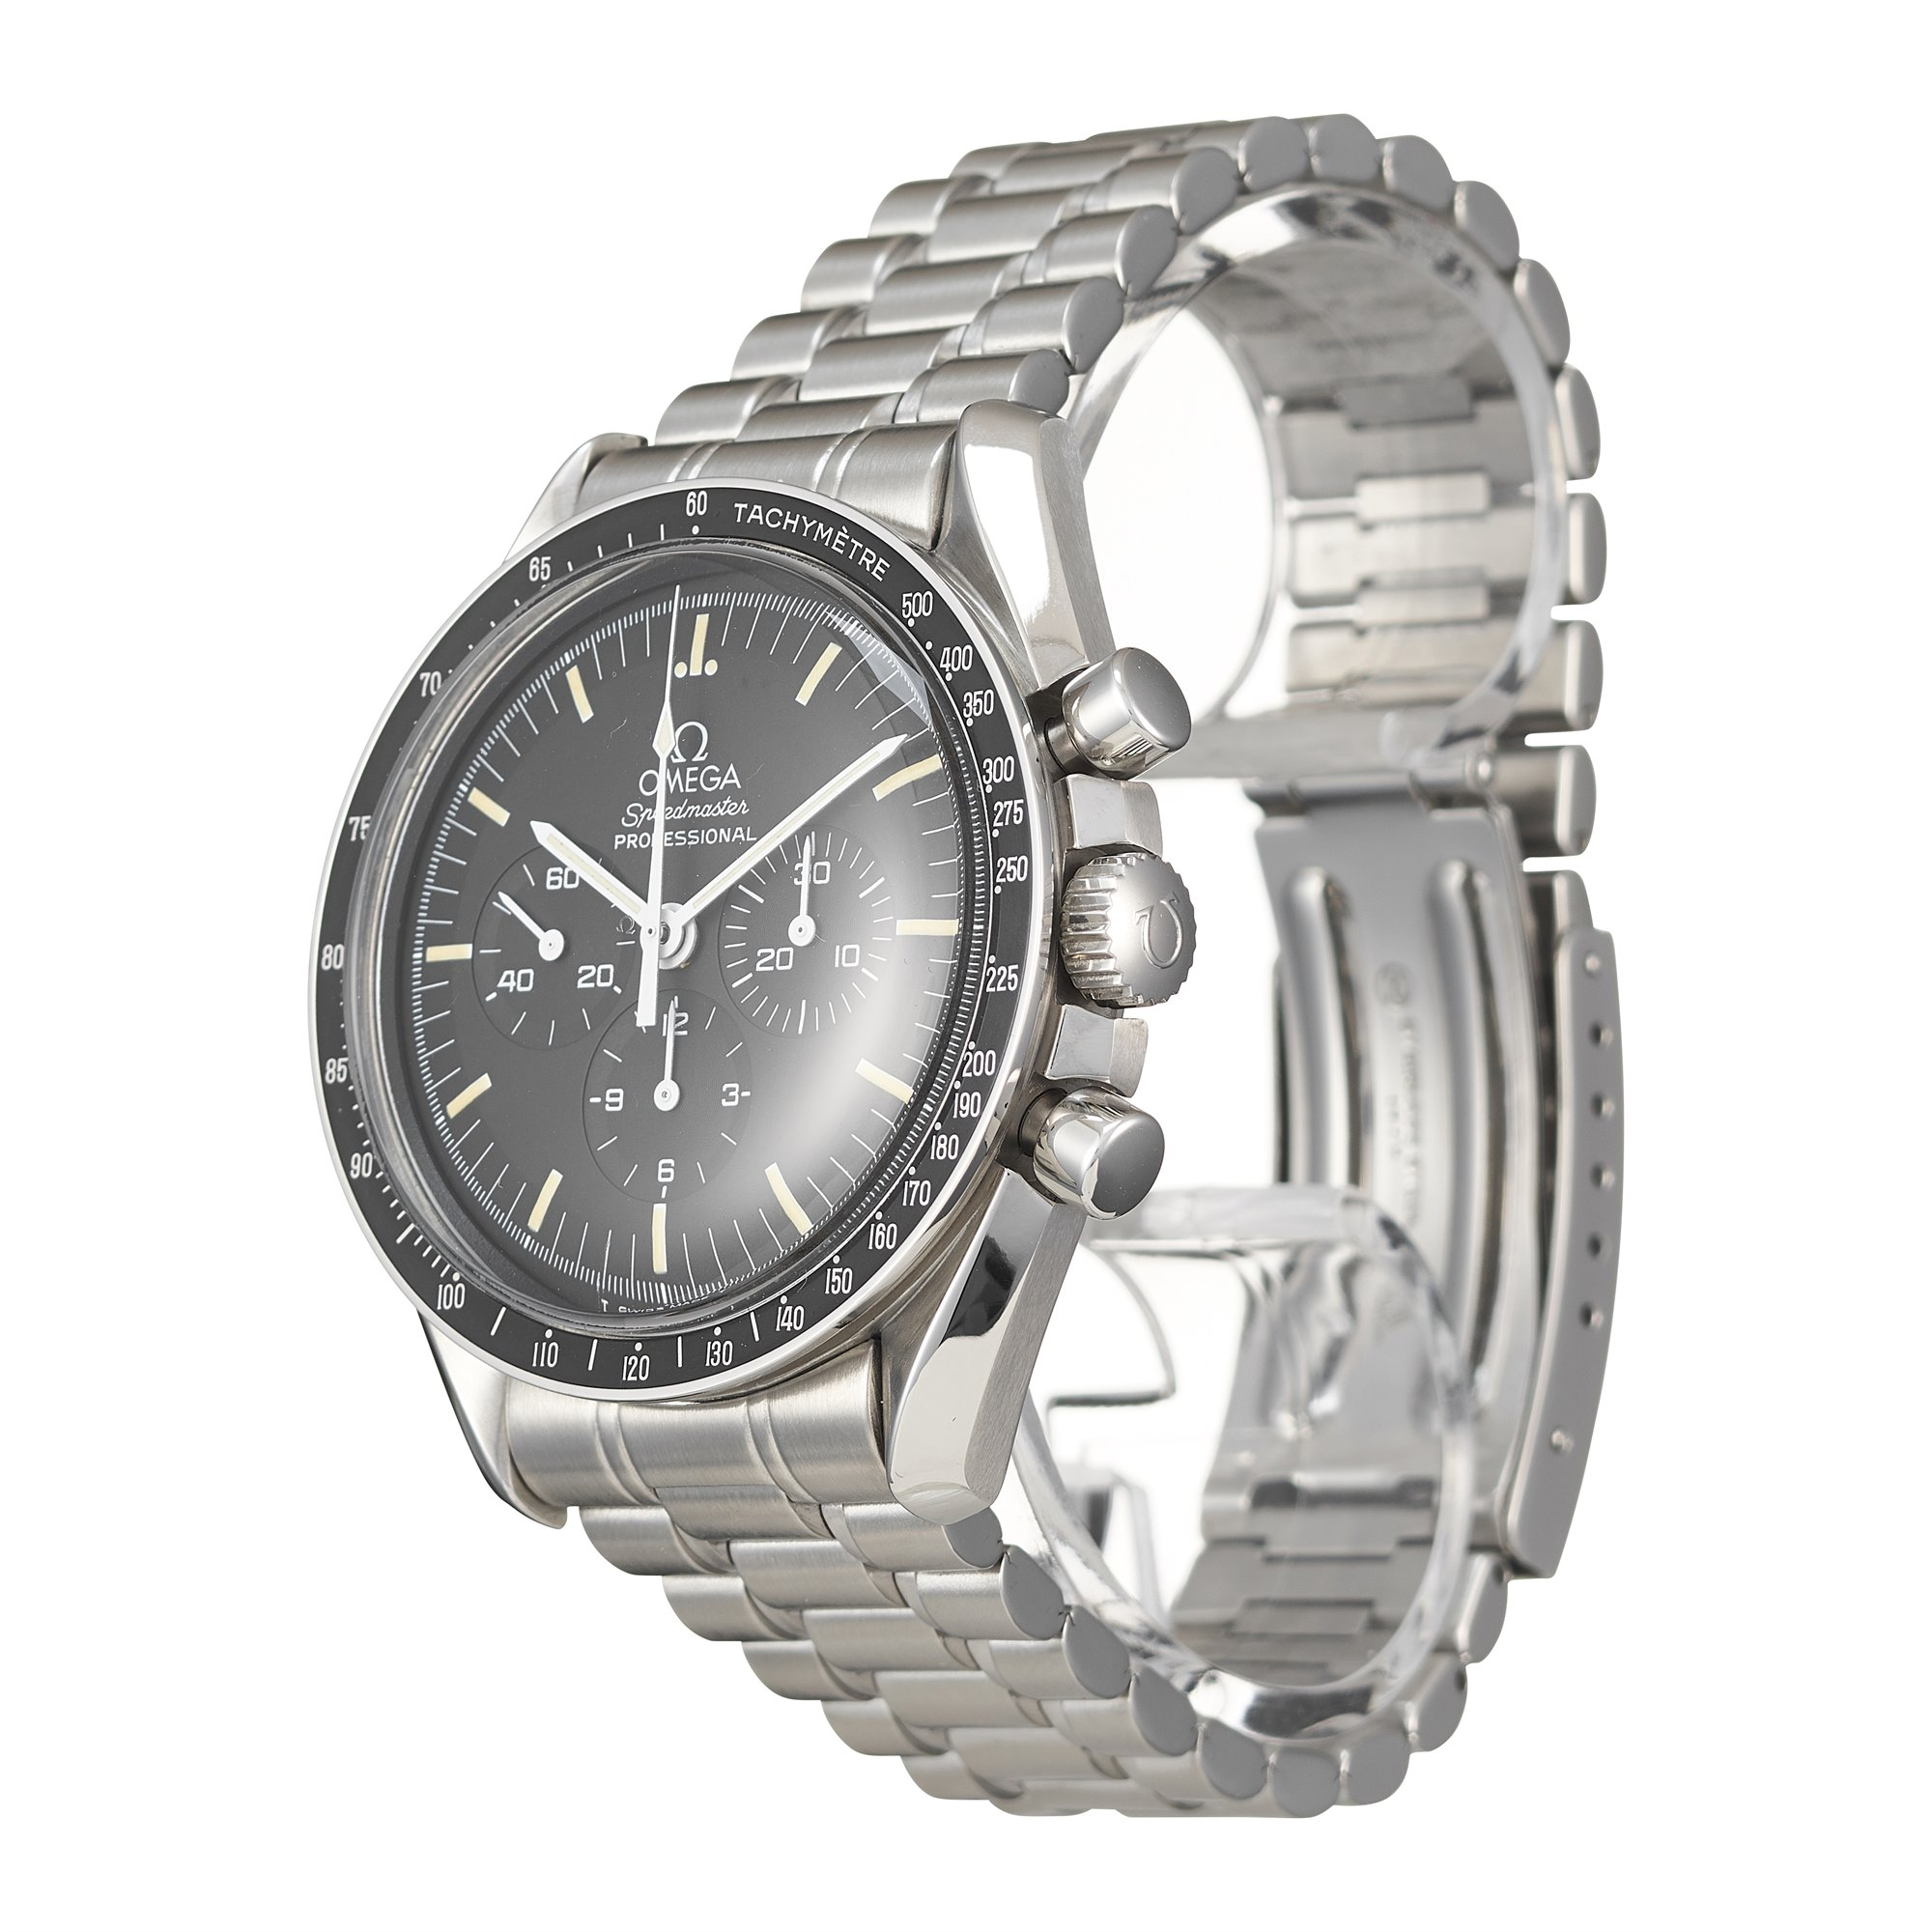 Omega Speedmaster Professional Moonwatch Roestvrij Staal 3590.50.00